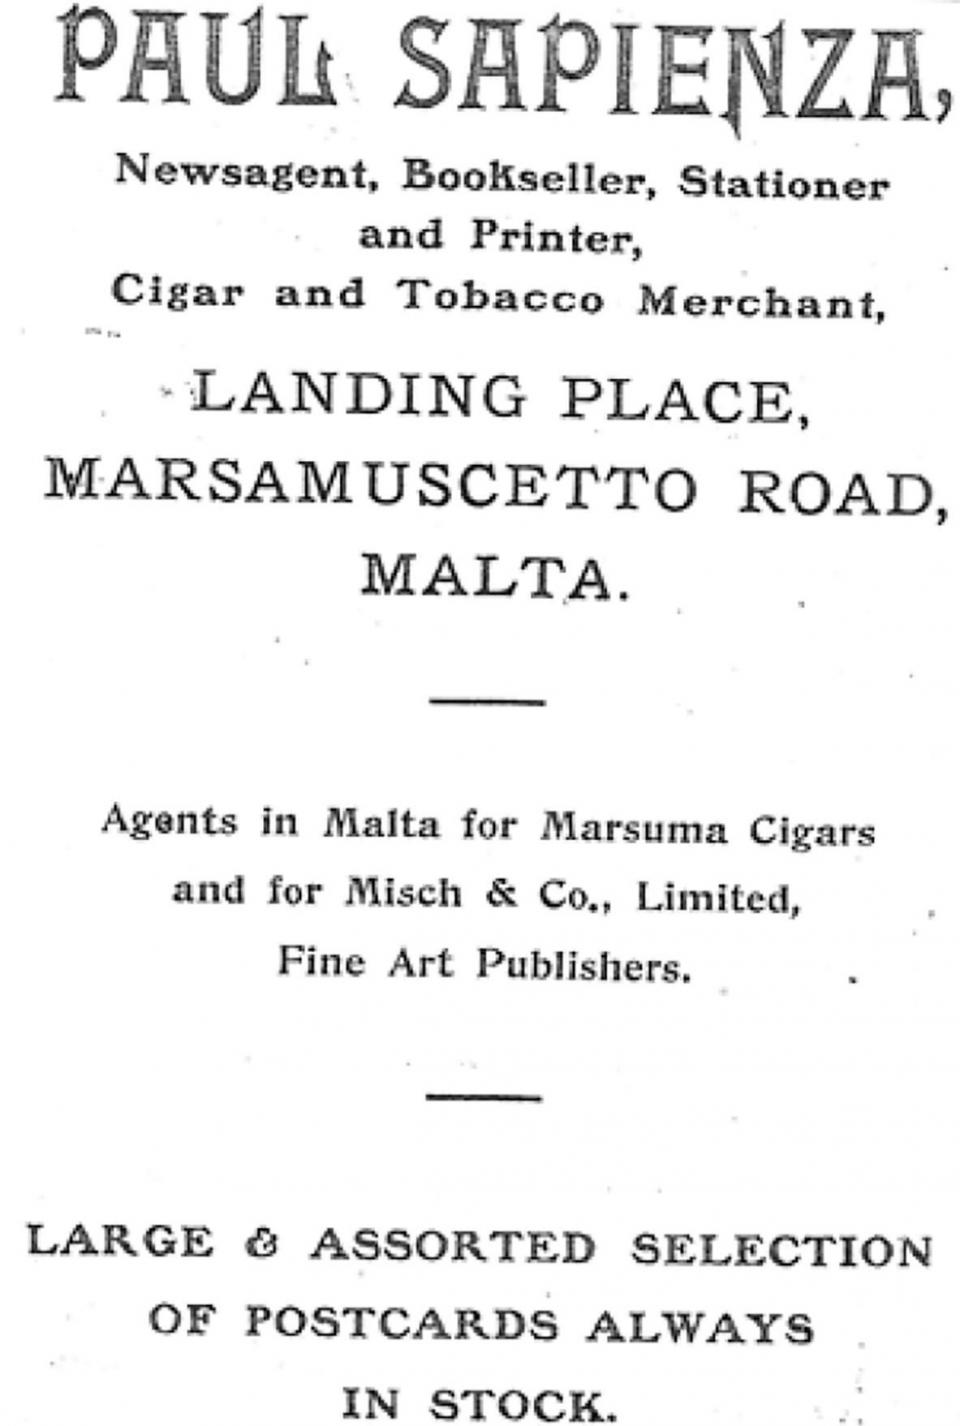 Advert by Paul Sapienza.